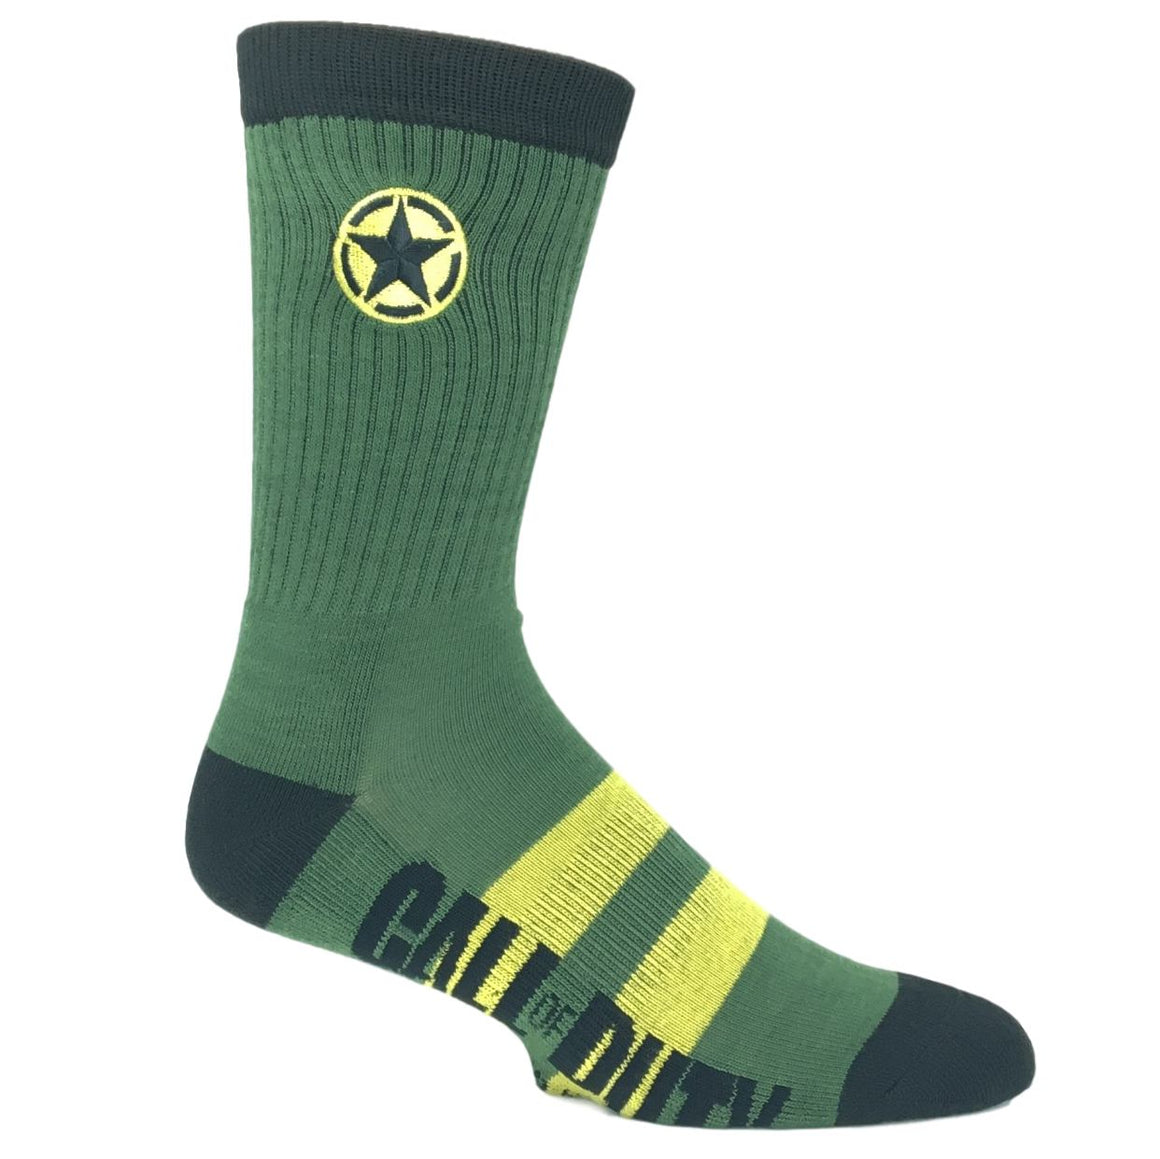 Call of Duty Army Socks - The Sock Spot